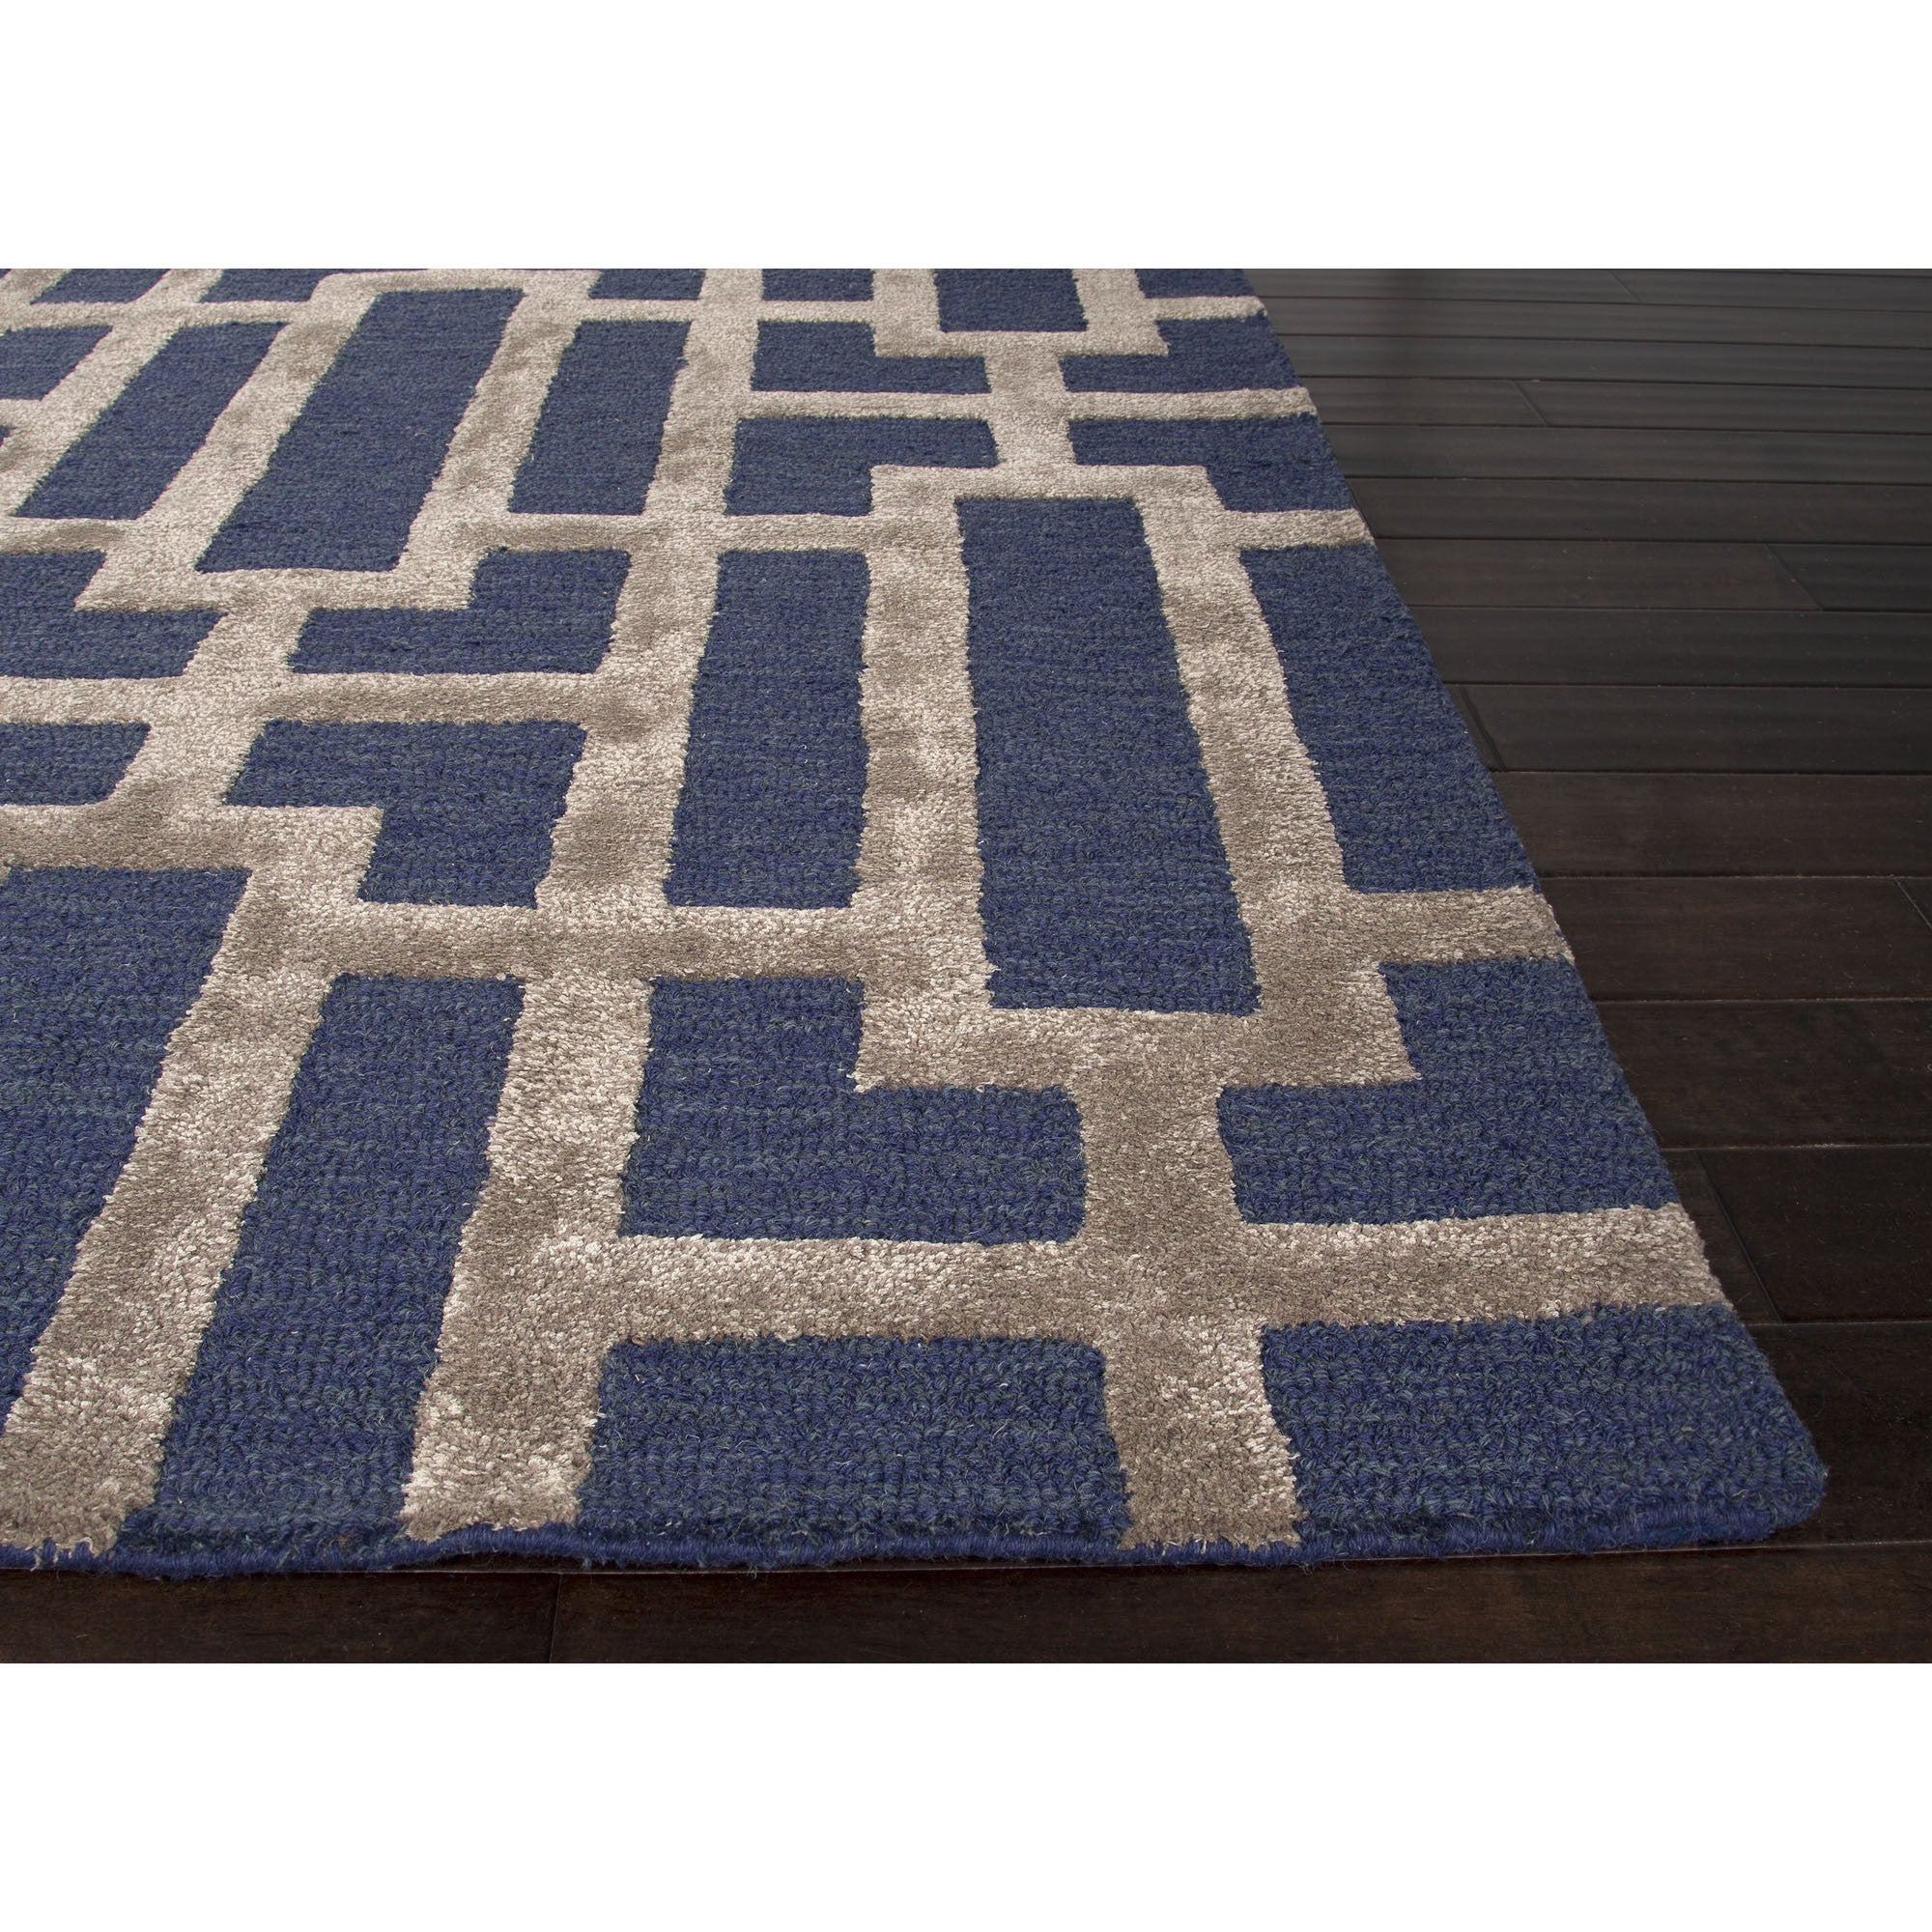 Jaipur rugs modern geometric pattern blue taupe wool and for Contemporary wool area rugs